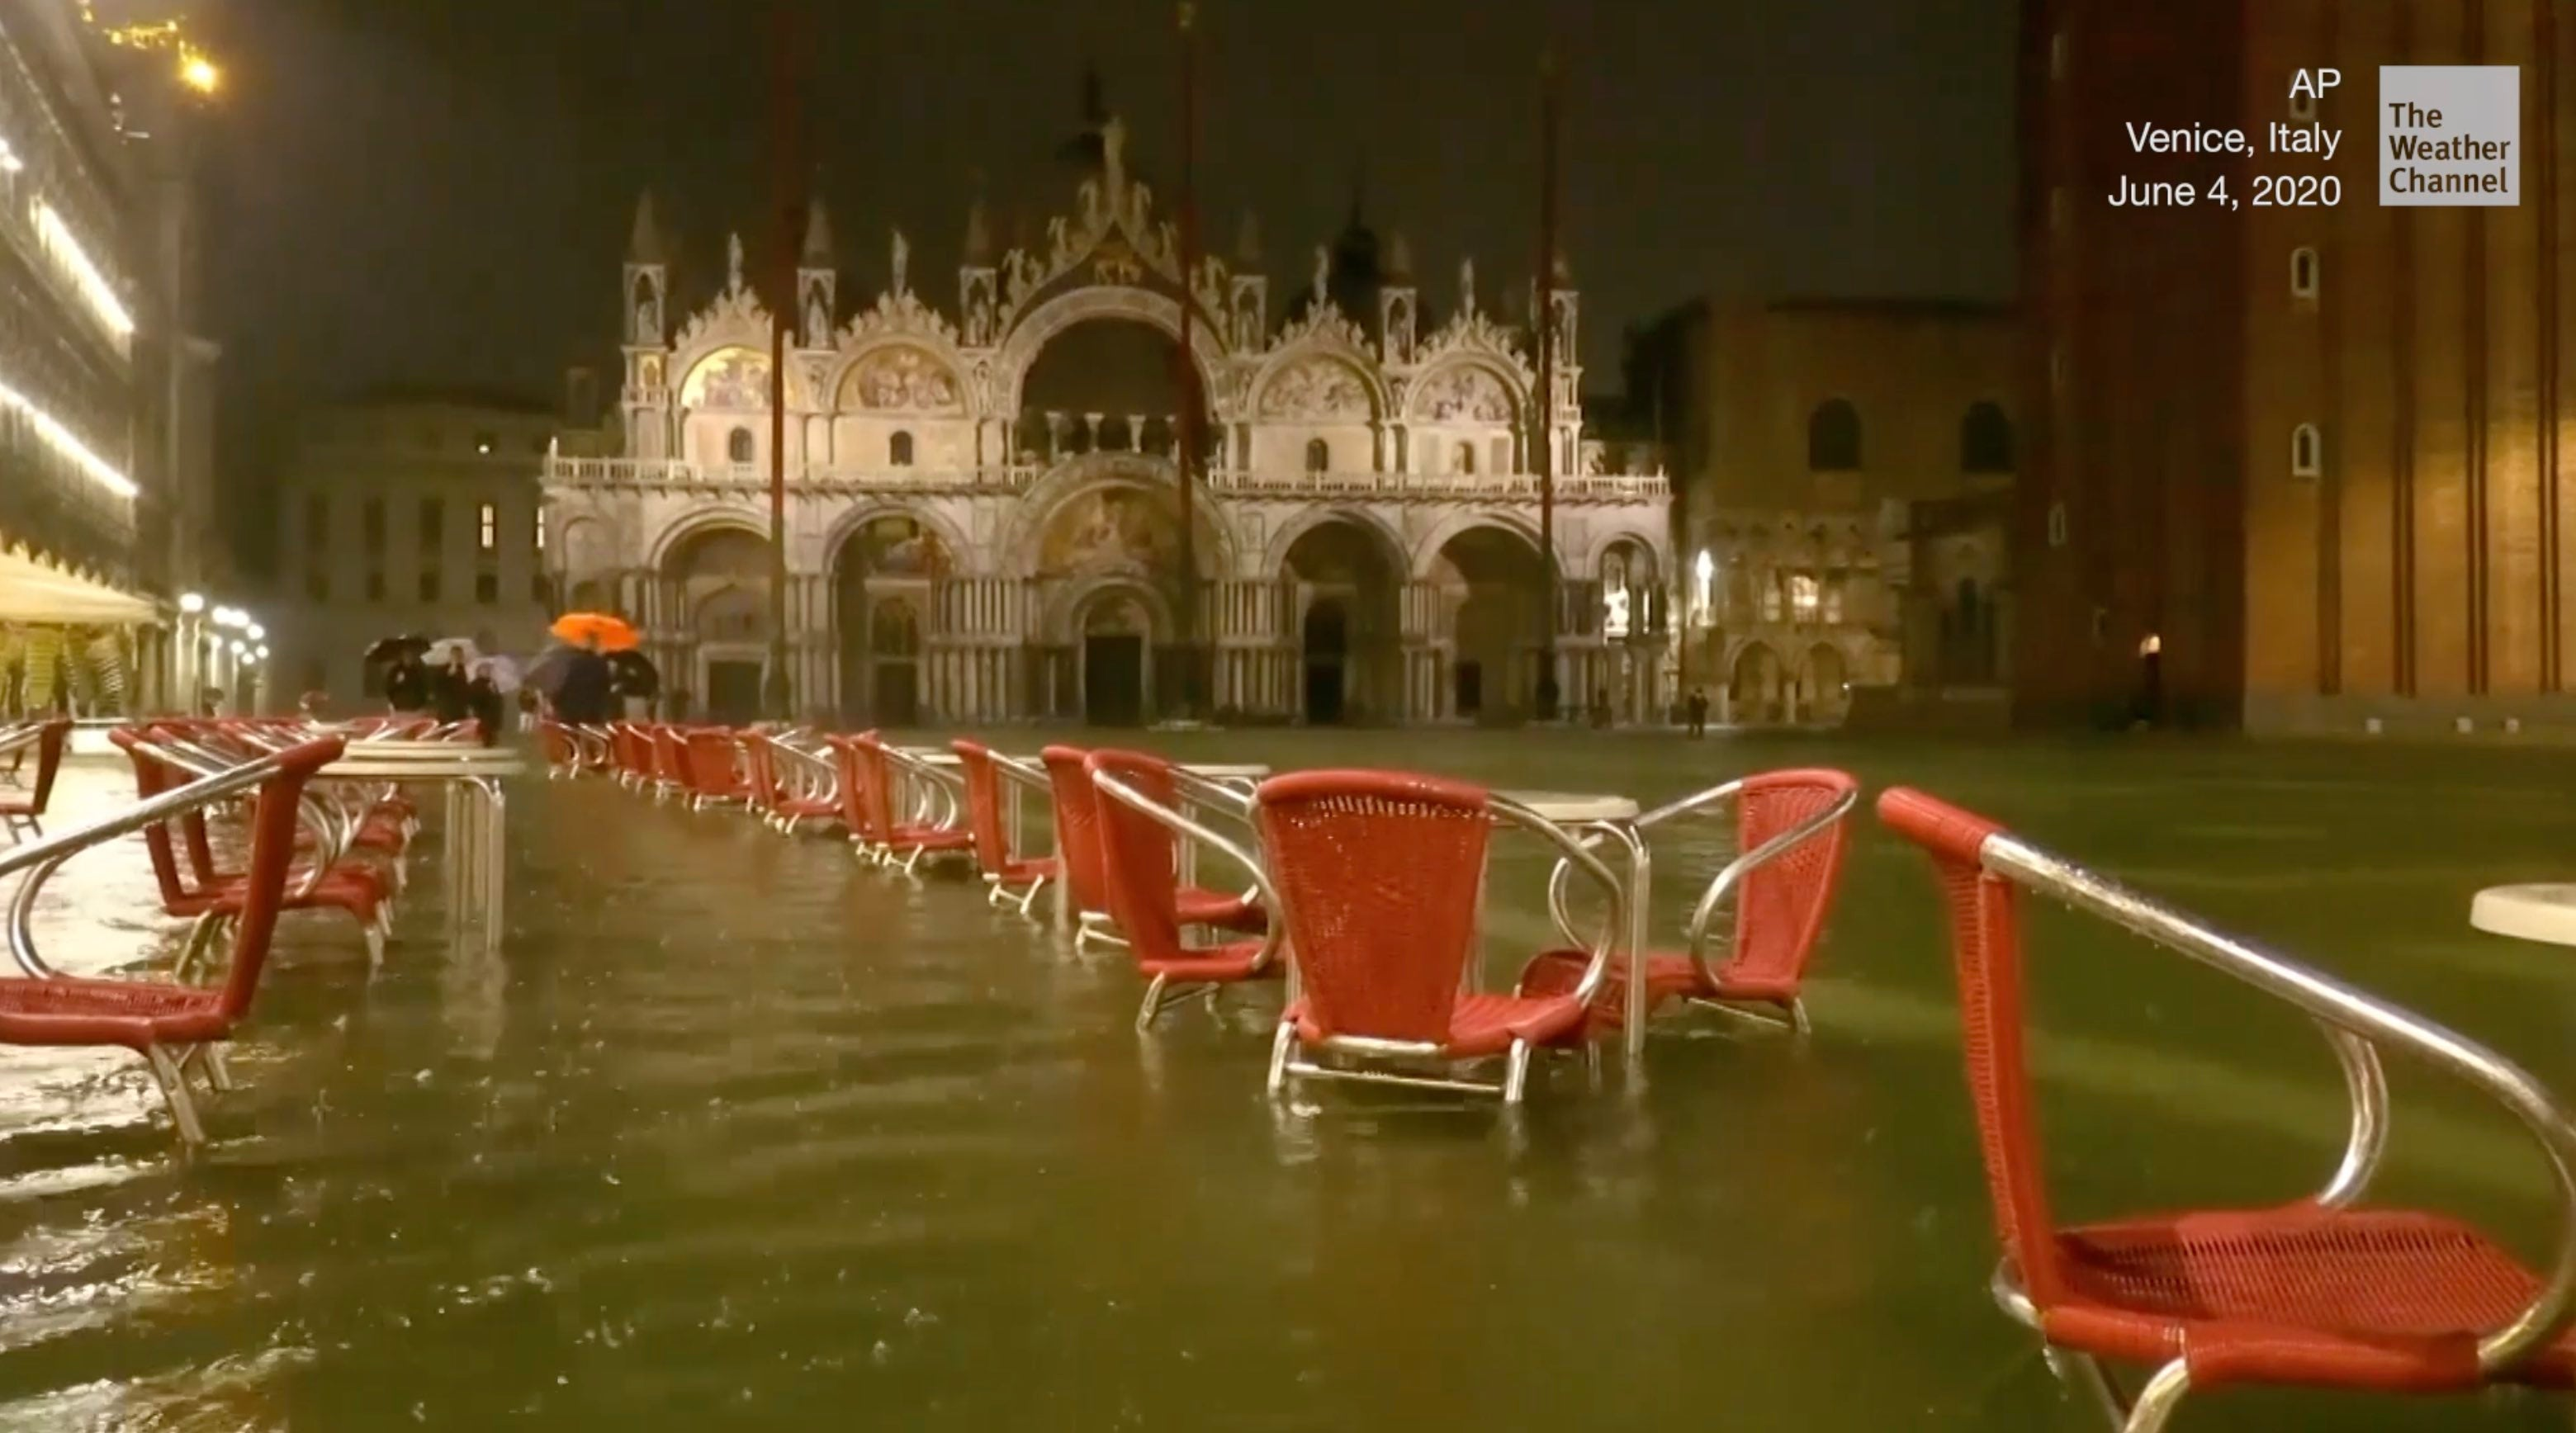 Venice, Italy is known for flooding, but not usually in June.